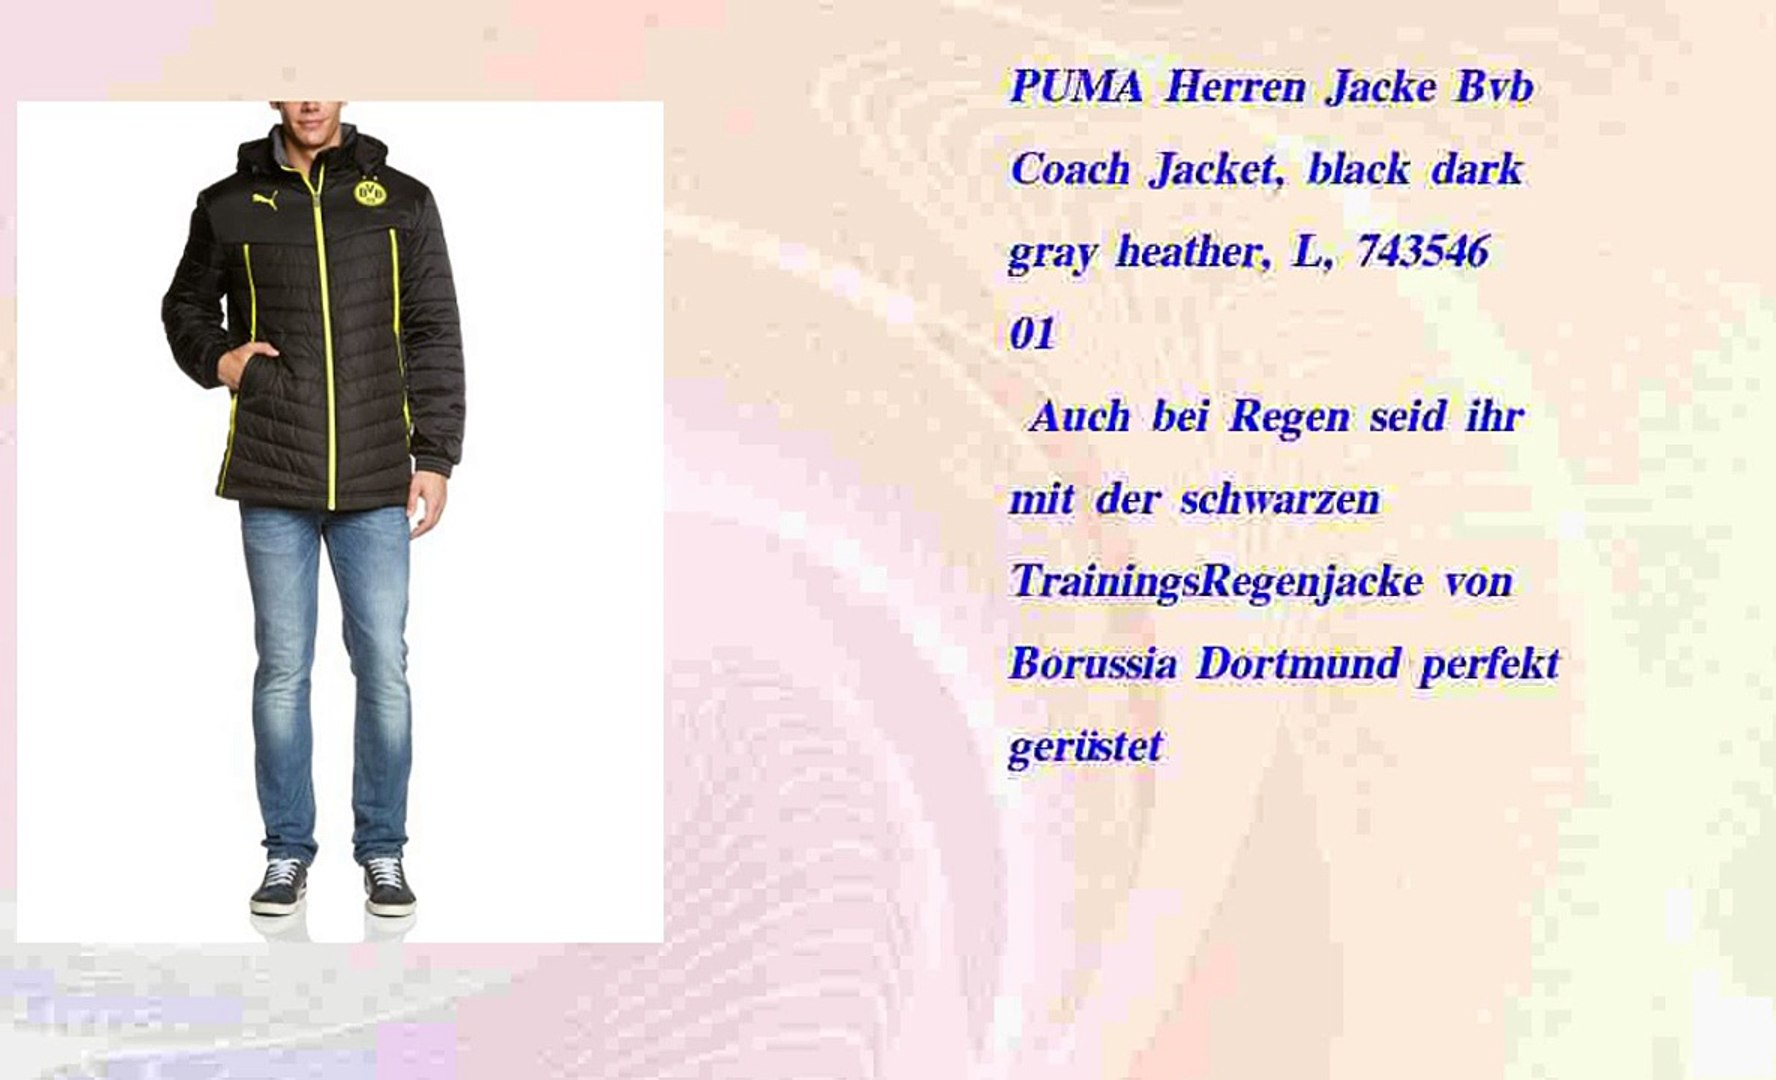 PUMA Herren Jacke Bvb Coach Jacket black dark gray